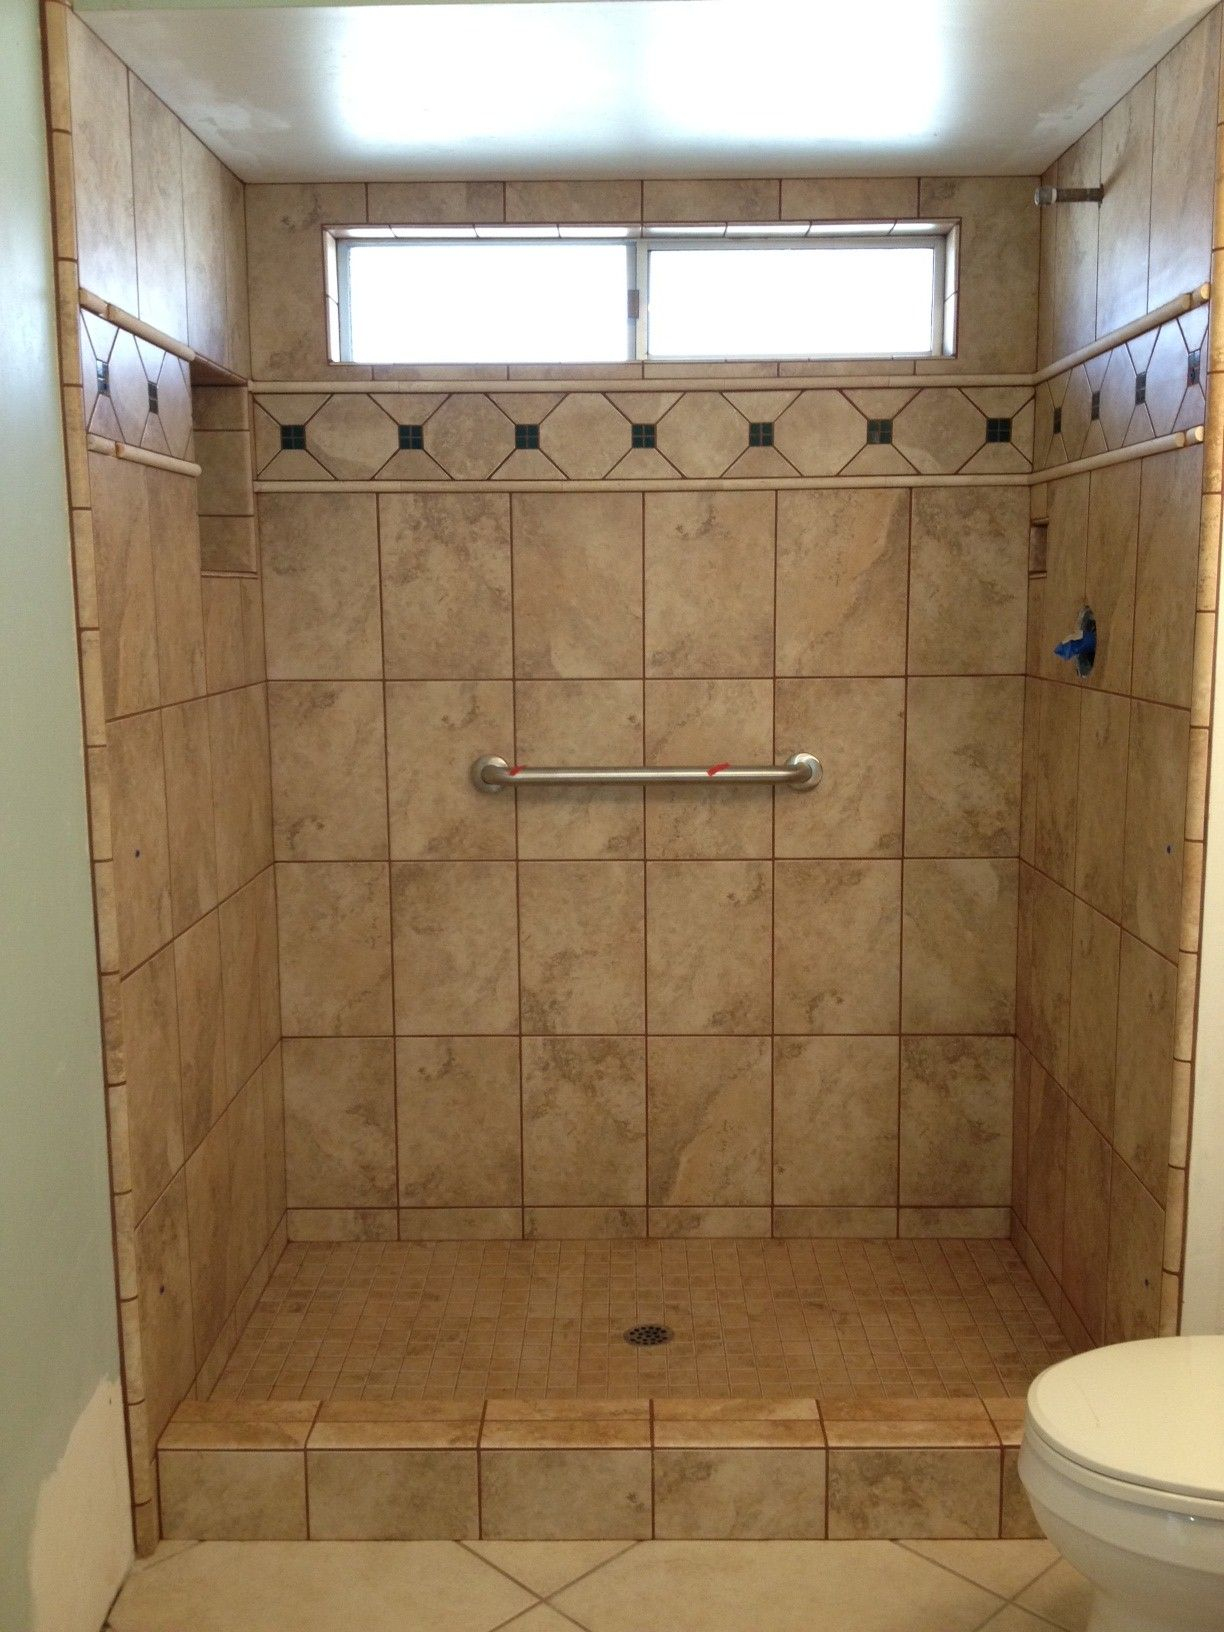 Photos of tiled shower stalls photos gallery custom Bathroom tile pictures gallery